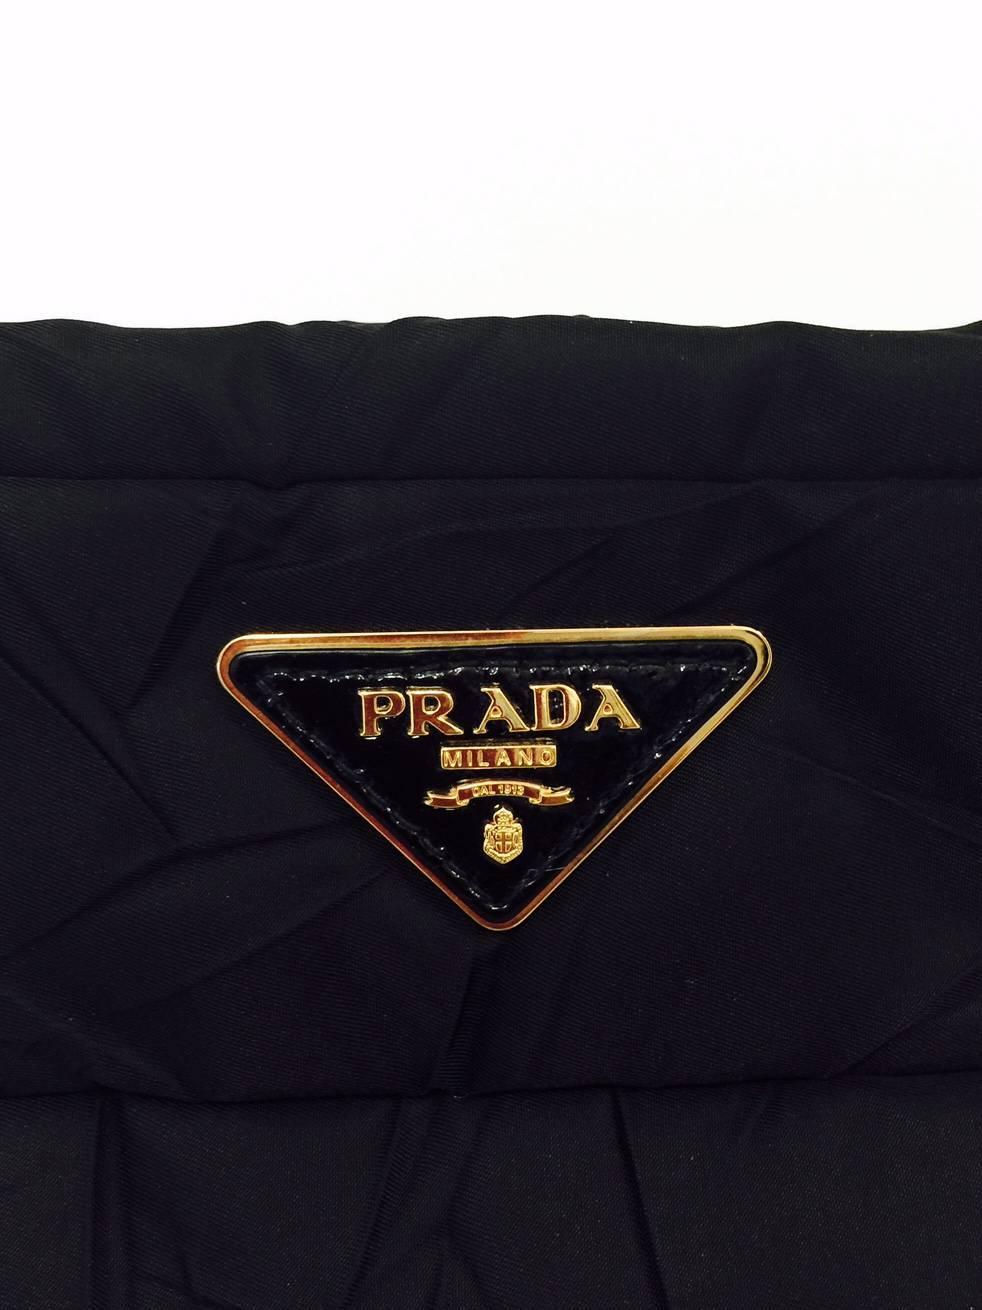 Prada Black Quilted Nylon Handbag With Patent Leather Handle and ...